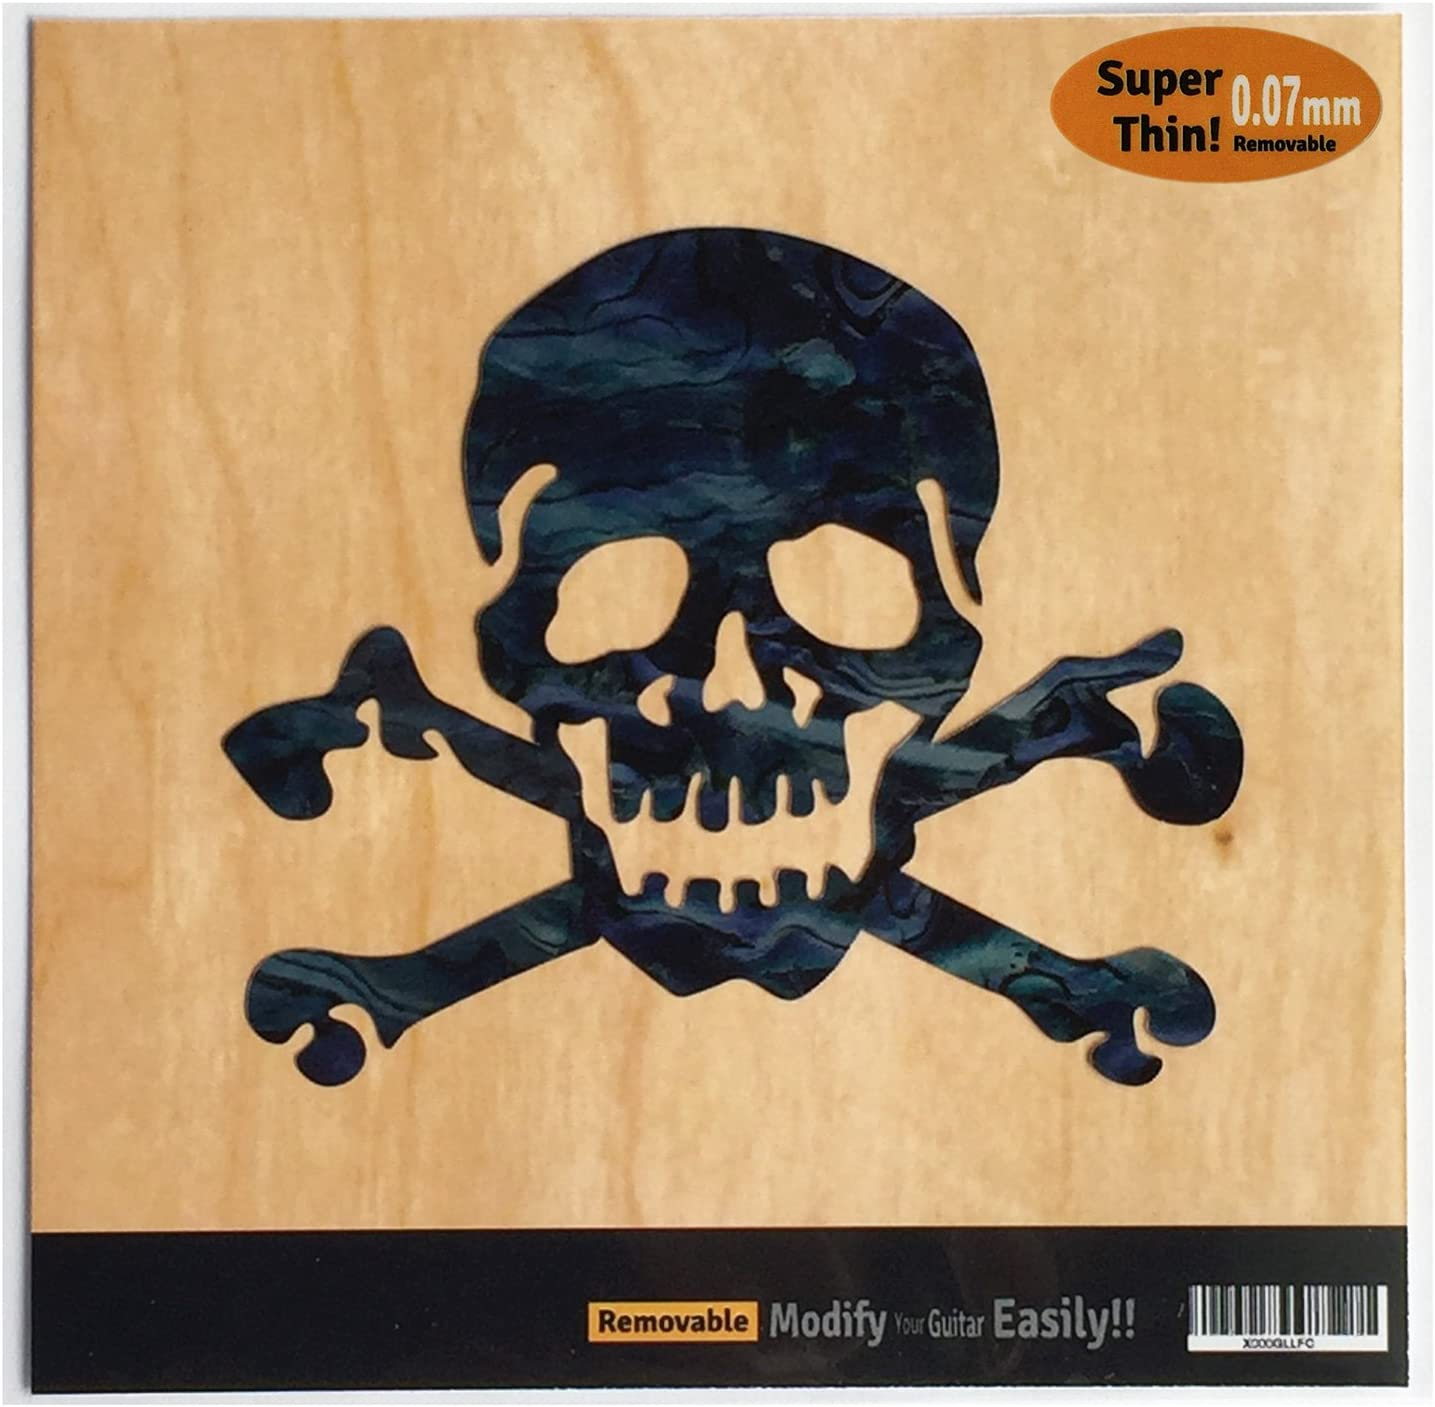 Pirate Skull Inlay Sticker Decal For Guitar /& Bass